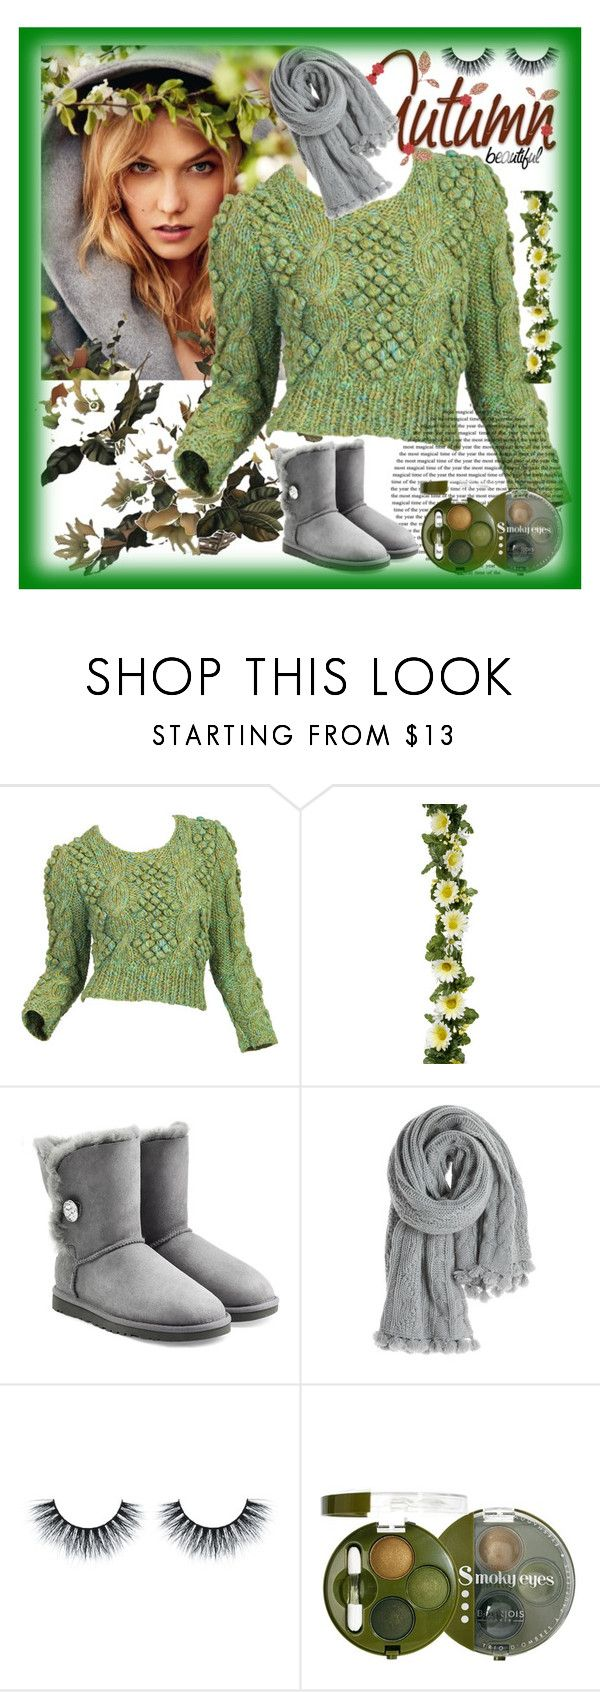 """""""Bez naslova #50"""" by sirena39 ❤ liked on Polyvore featuring Gerber, UGG Australia, Calypso St. Barth, Bourjois, women's clothing, women's fashion, women, female, woman and misses"""